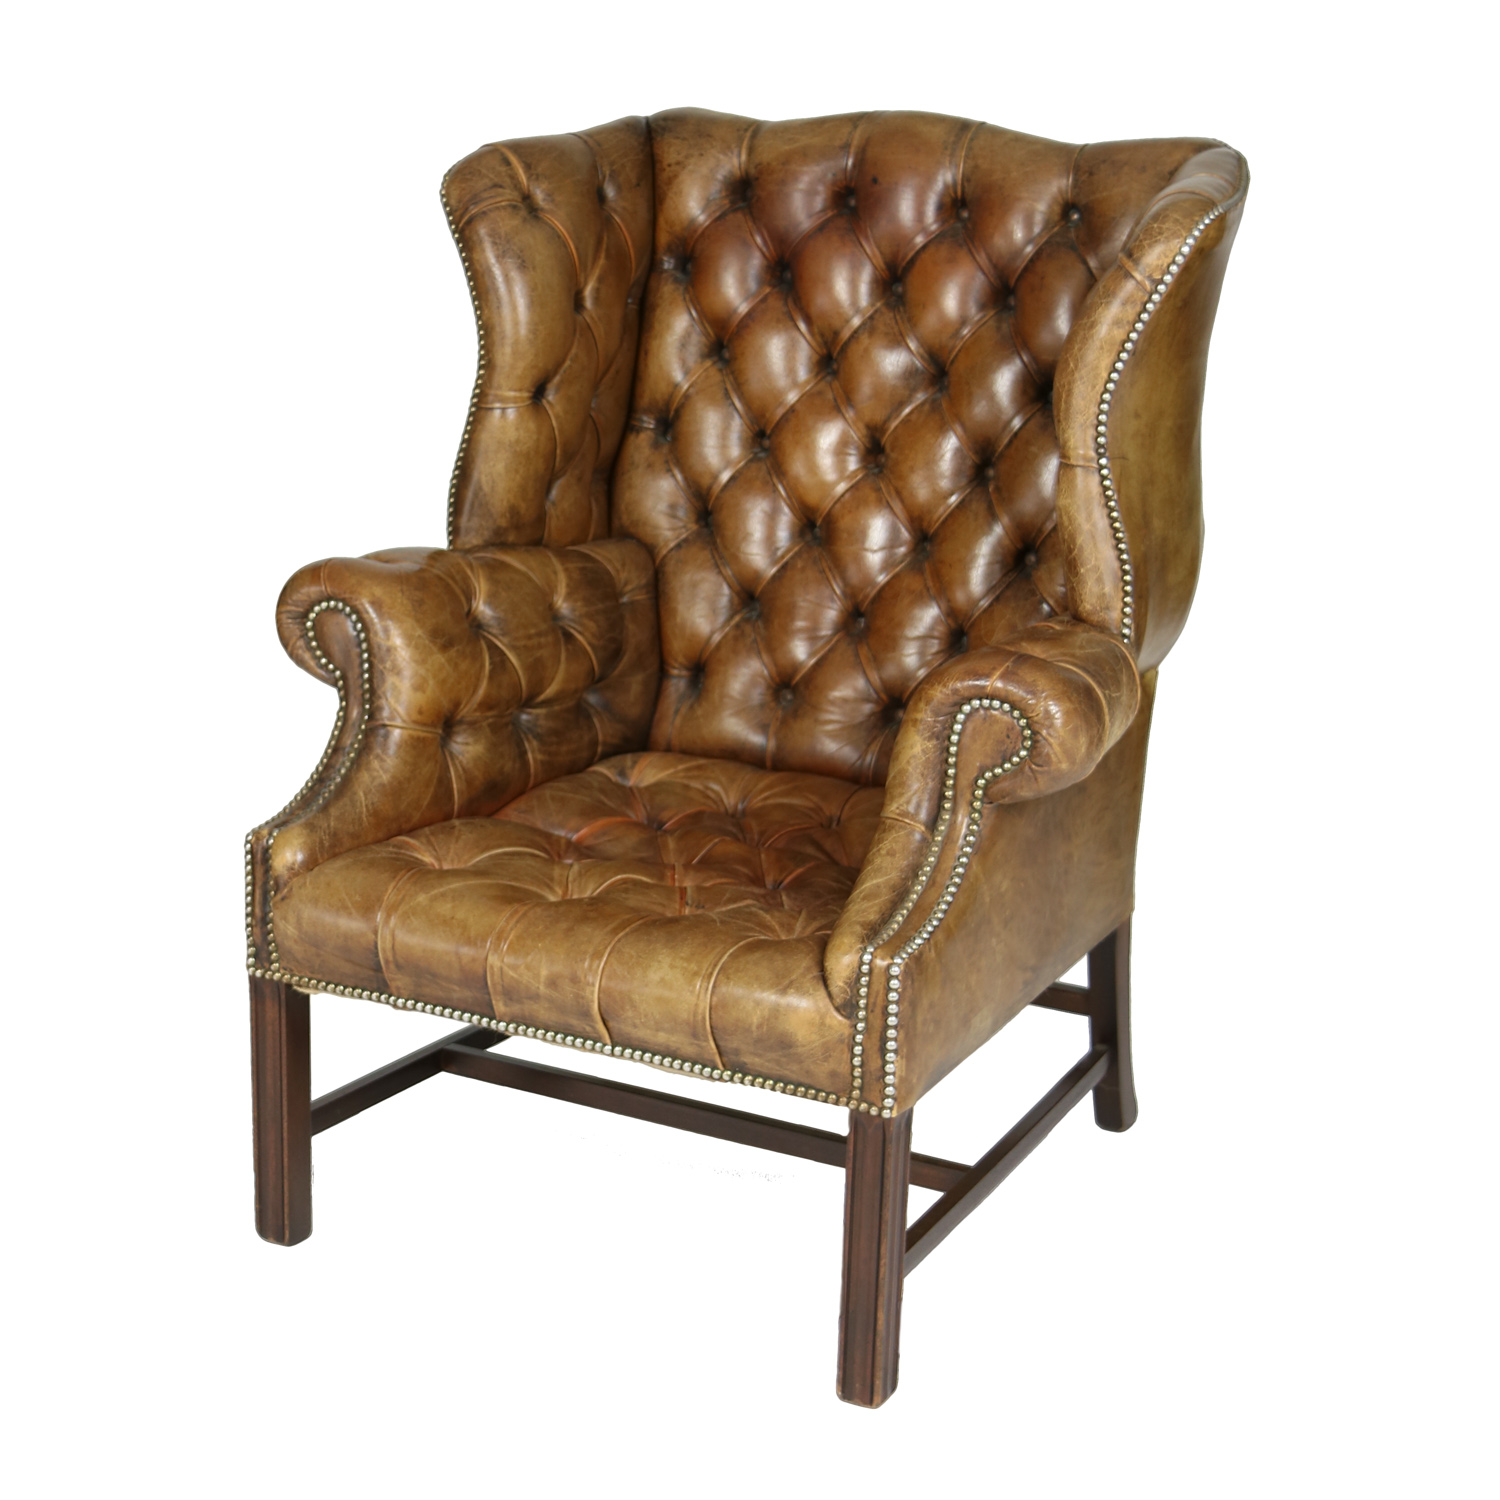 An Elegant Brown Tufted Leather And Mahogany Wing Chair With Seat English Circa 1860